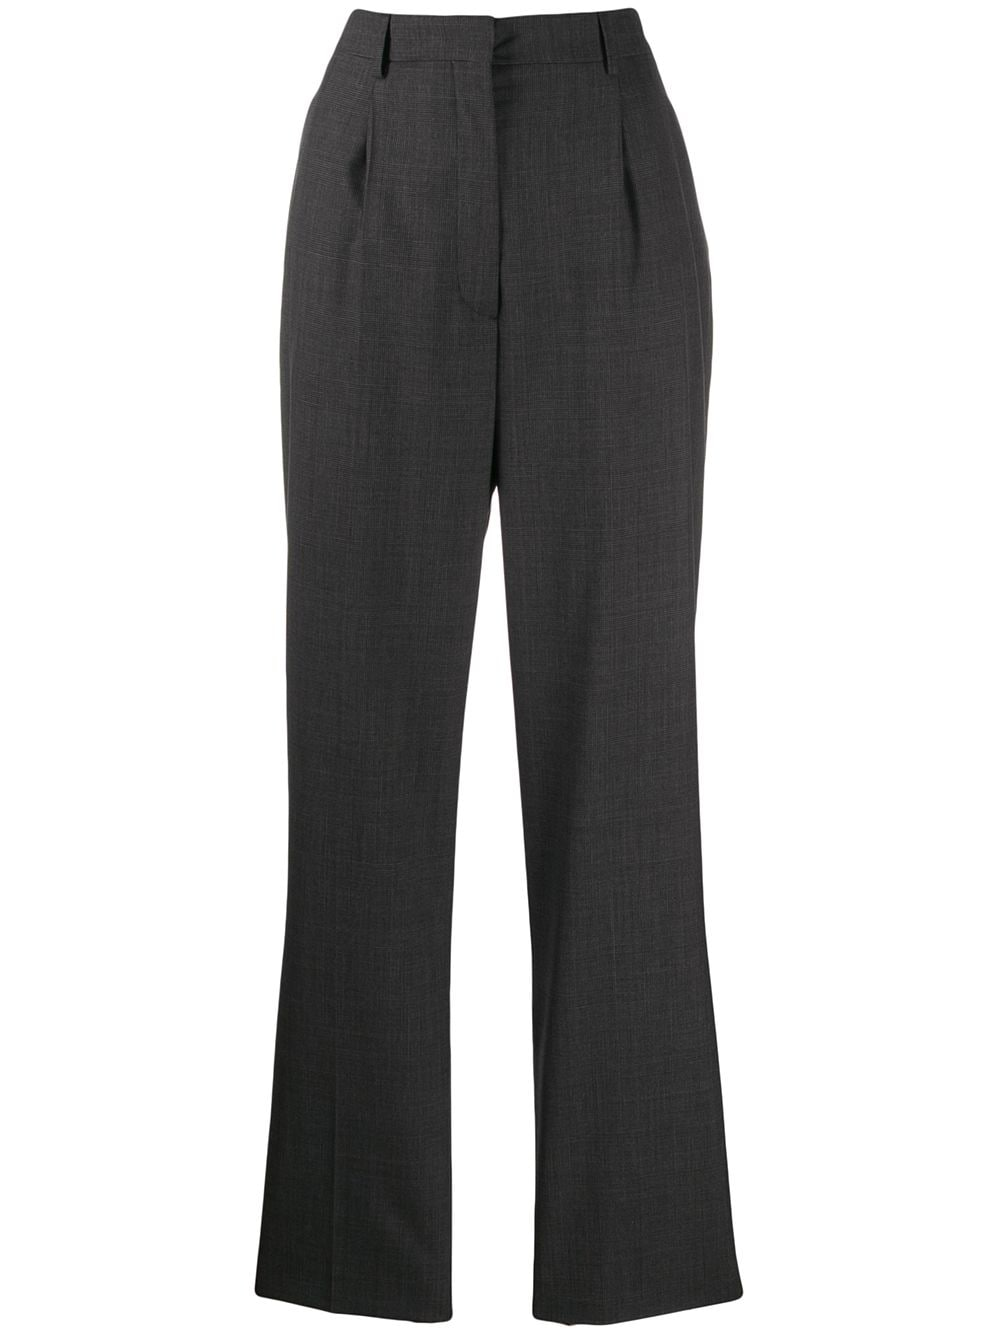 Prada high-waist wool trousers - Grey von Prada